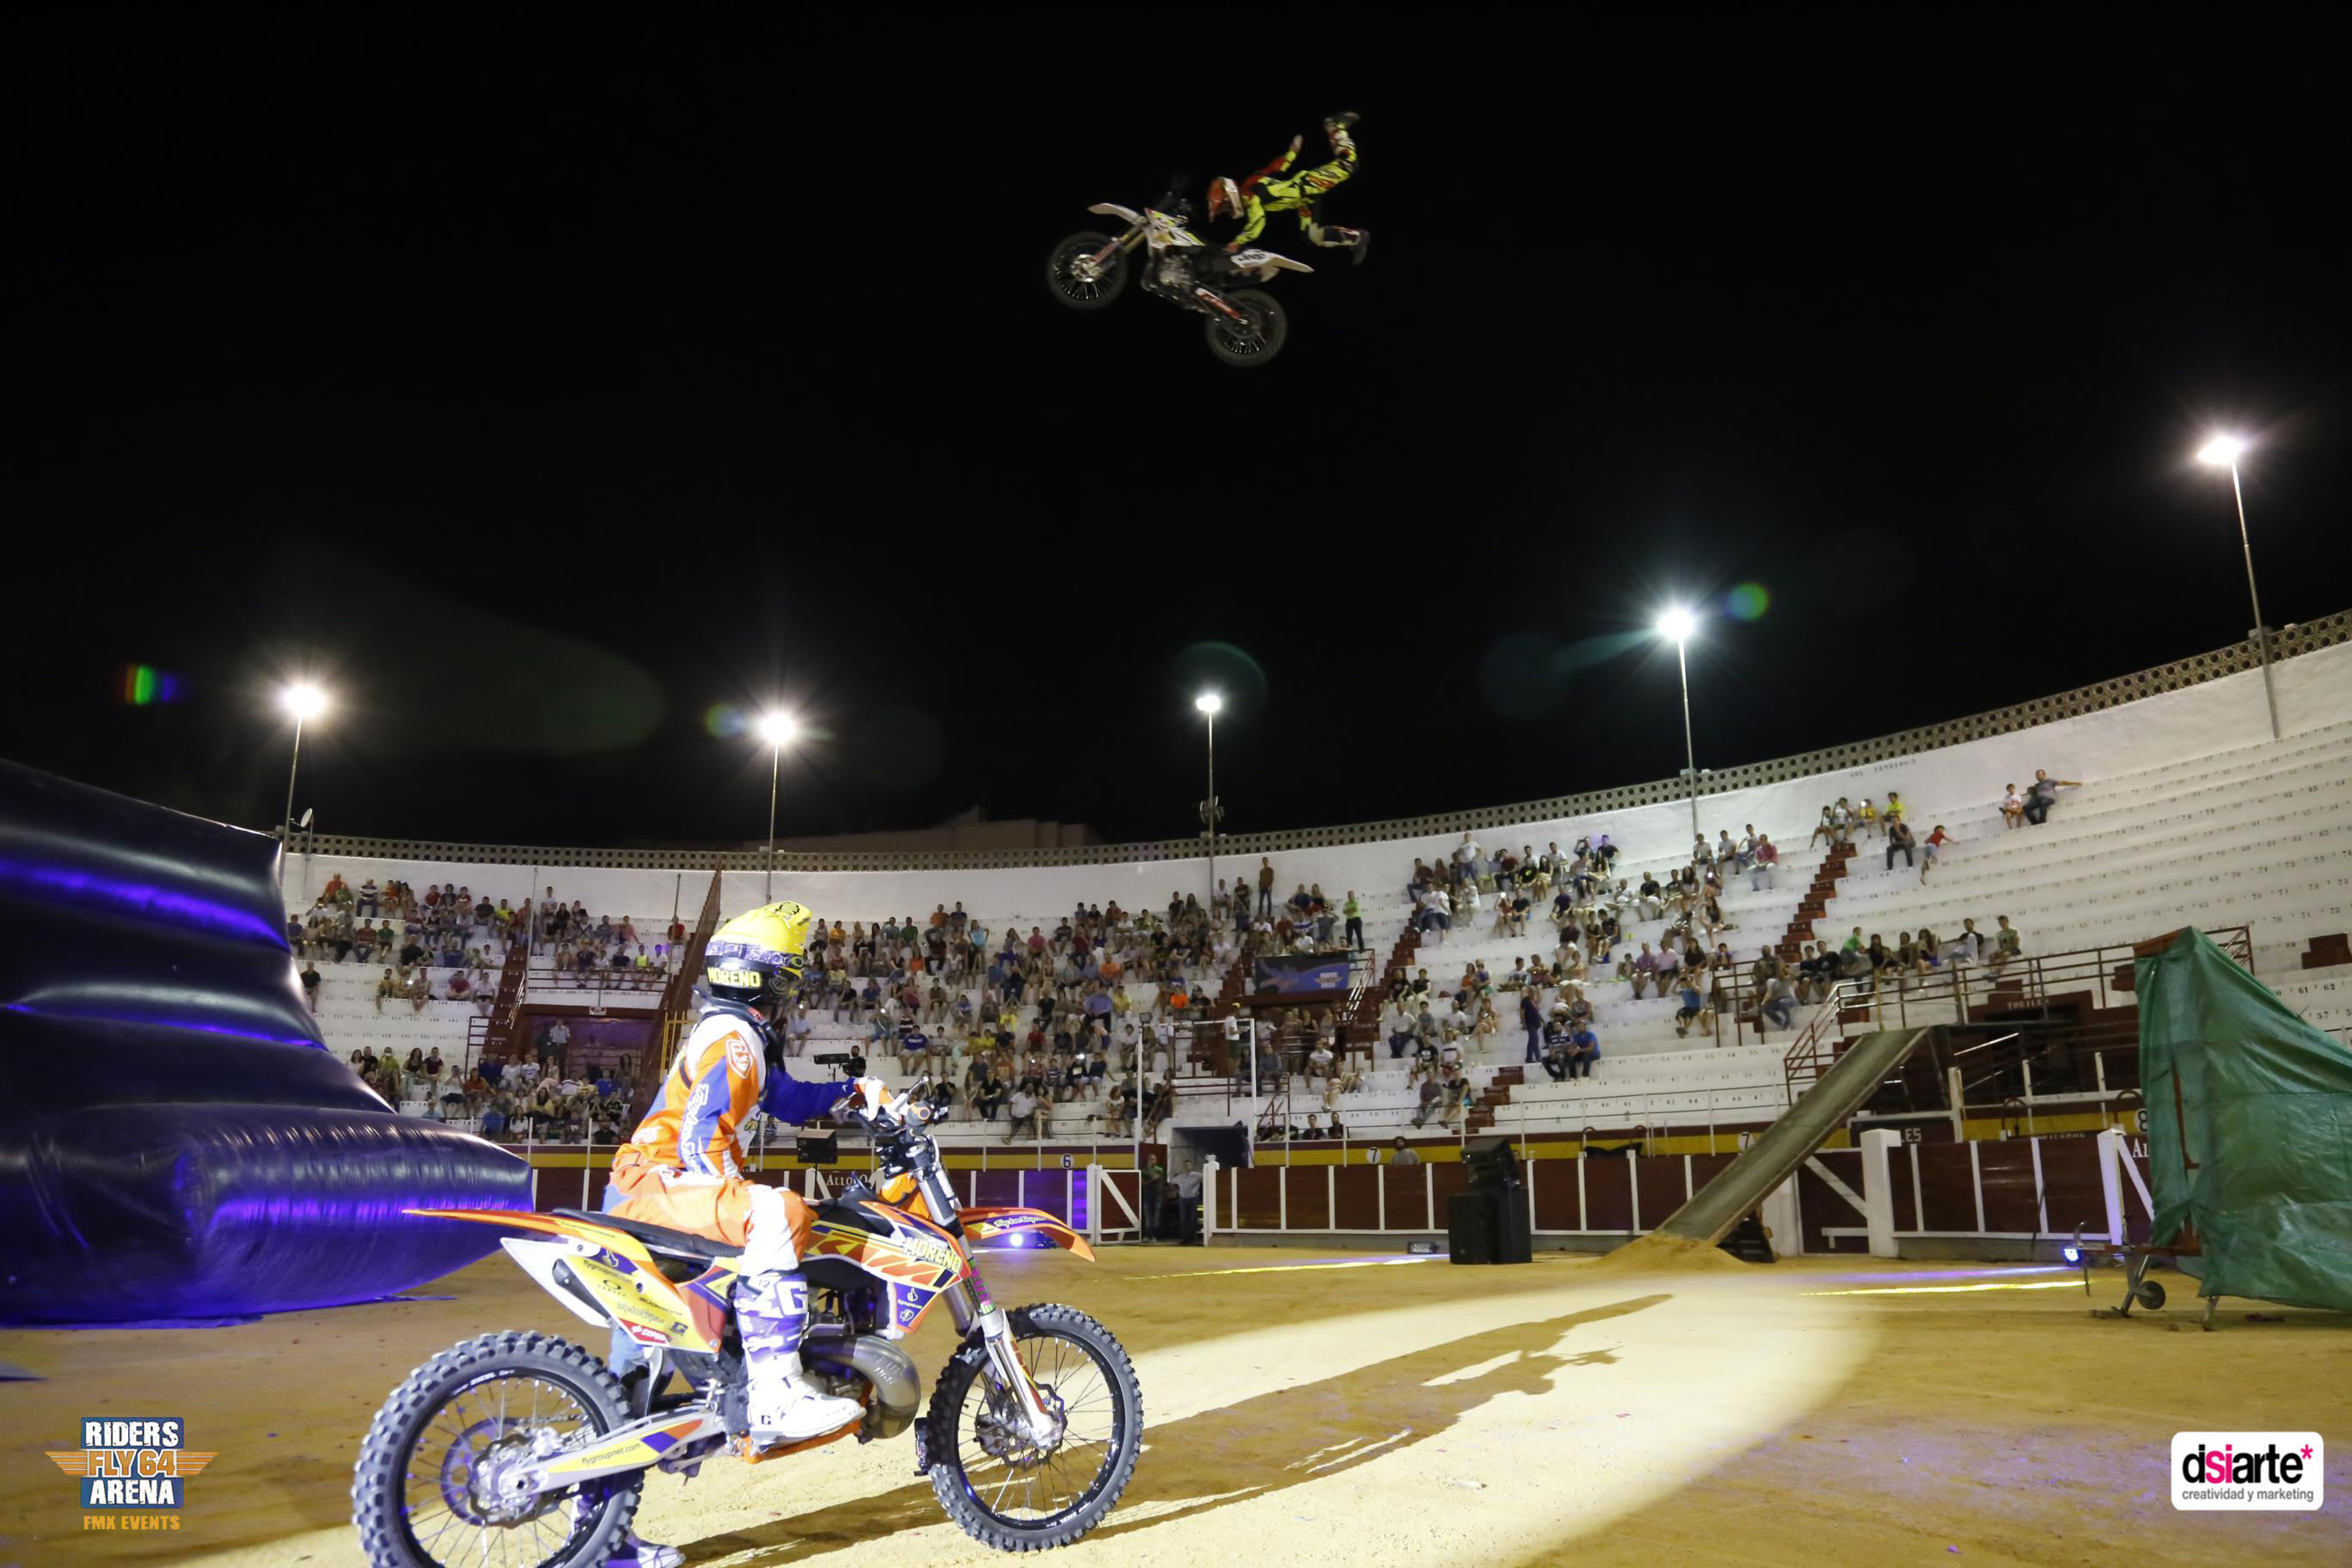 Fotografía espectáculos Albacete, fotografia de motos, Summer Night Tour 2015, freestyle motocross cup 2015